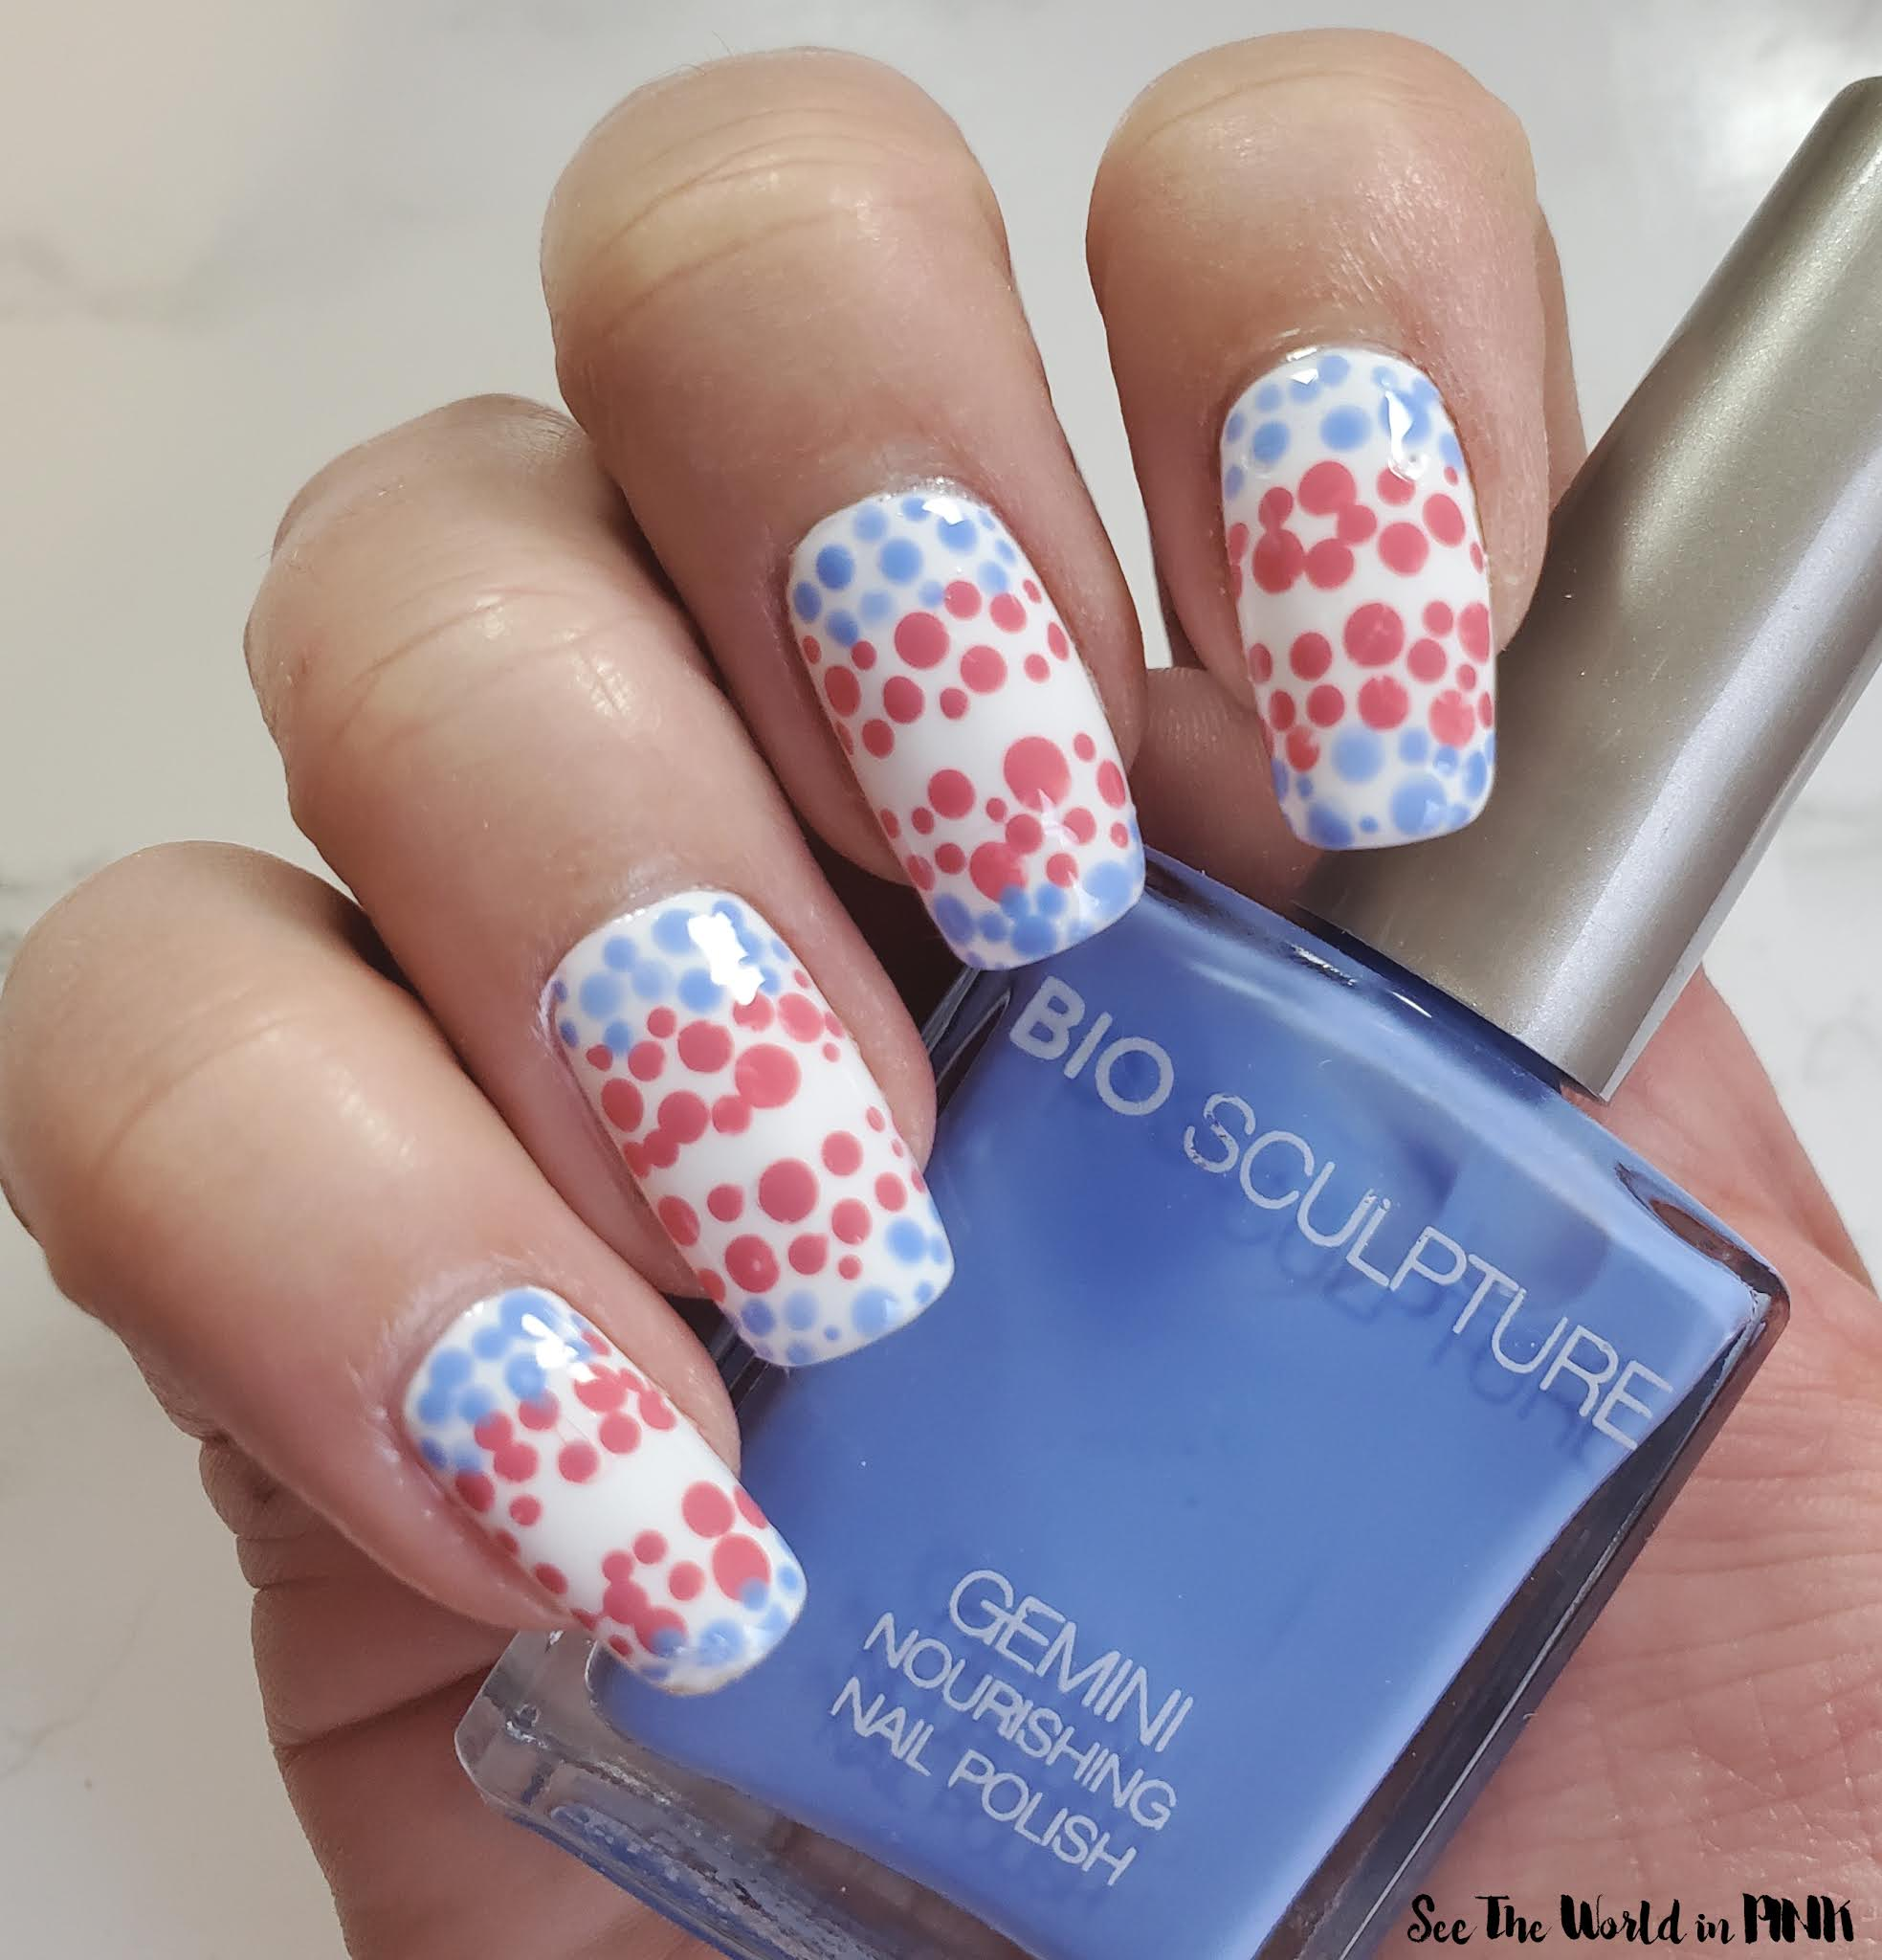 Manicure Monday - Dotted Trans Flag Pink, Blue and White Nails